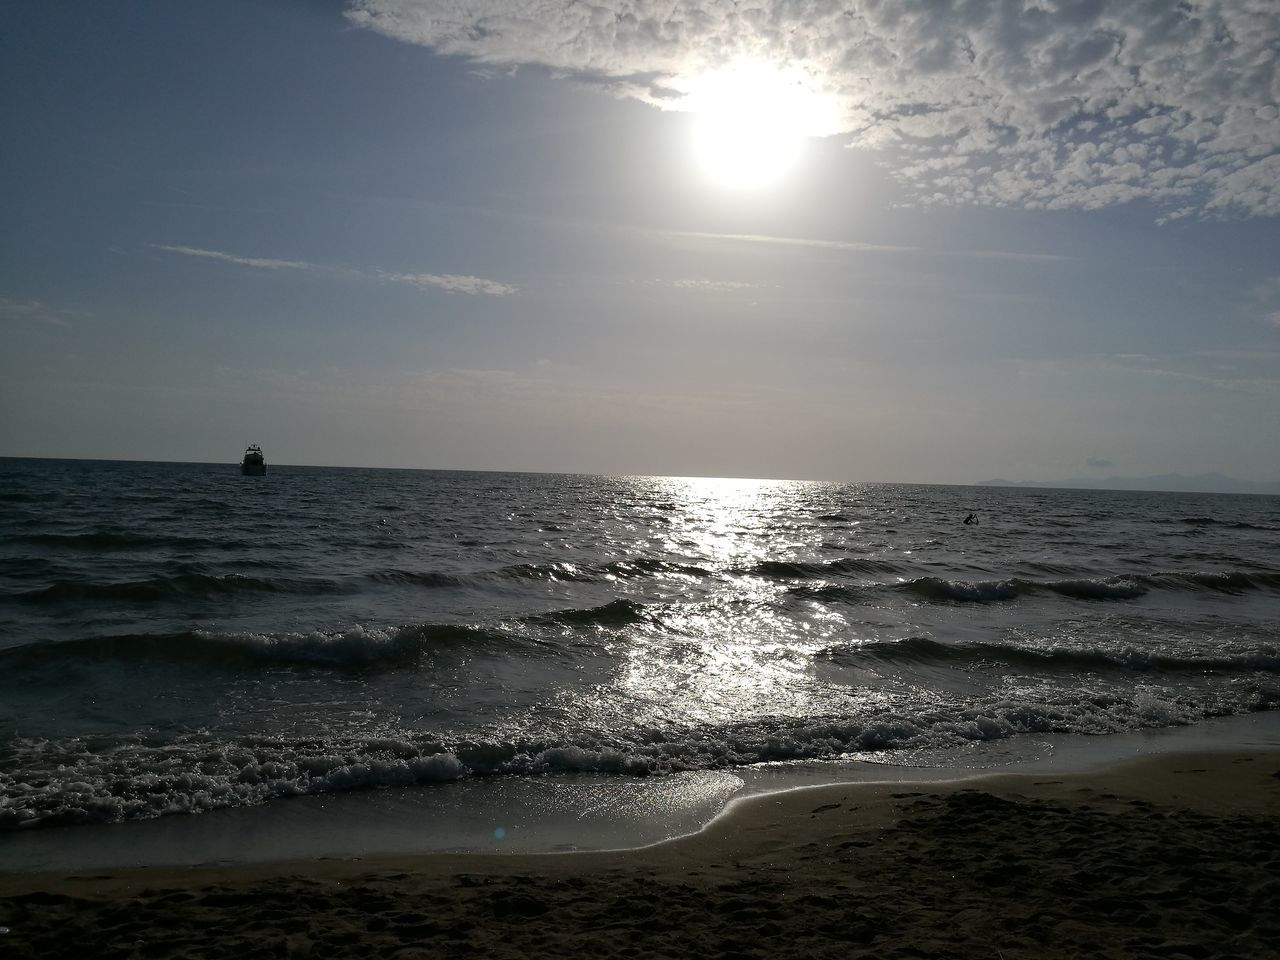 sea, horizon over water, beauty in nature, water, nature, scenics, beach, sun, sky, sunlight, sand, tranquility, sunset, wave, tranquil scene, outdoors, no people, day